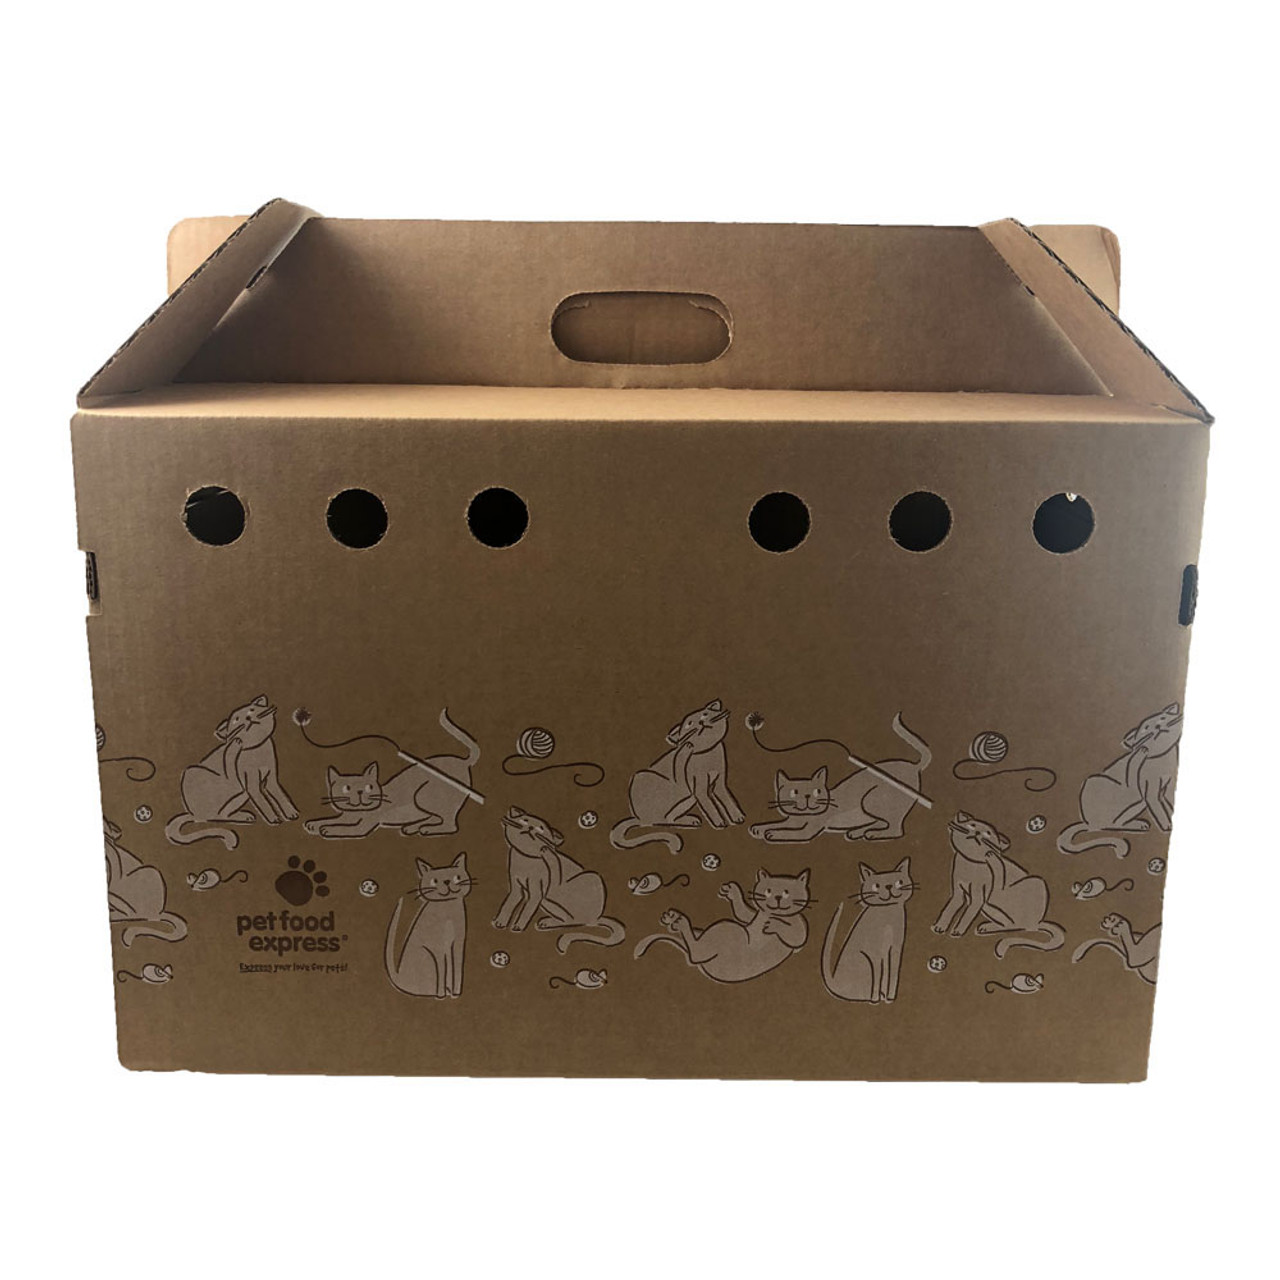 Pet Food Express Cardboard Pet Carrier